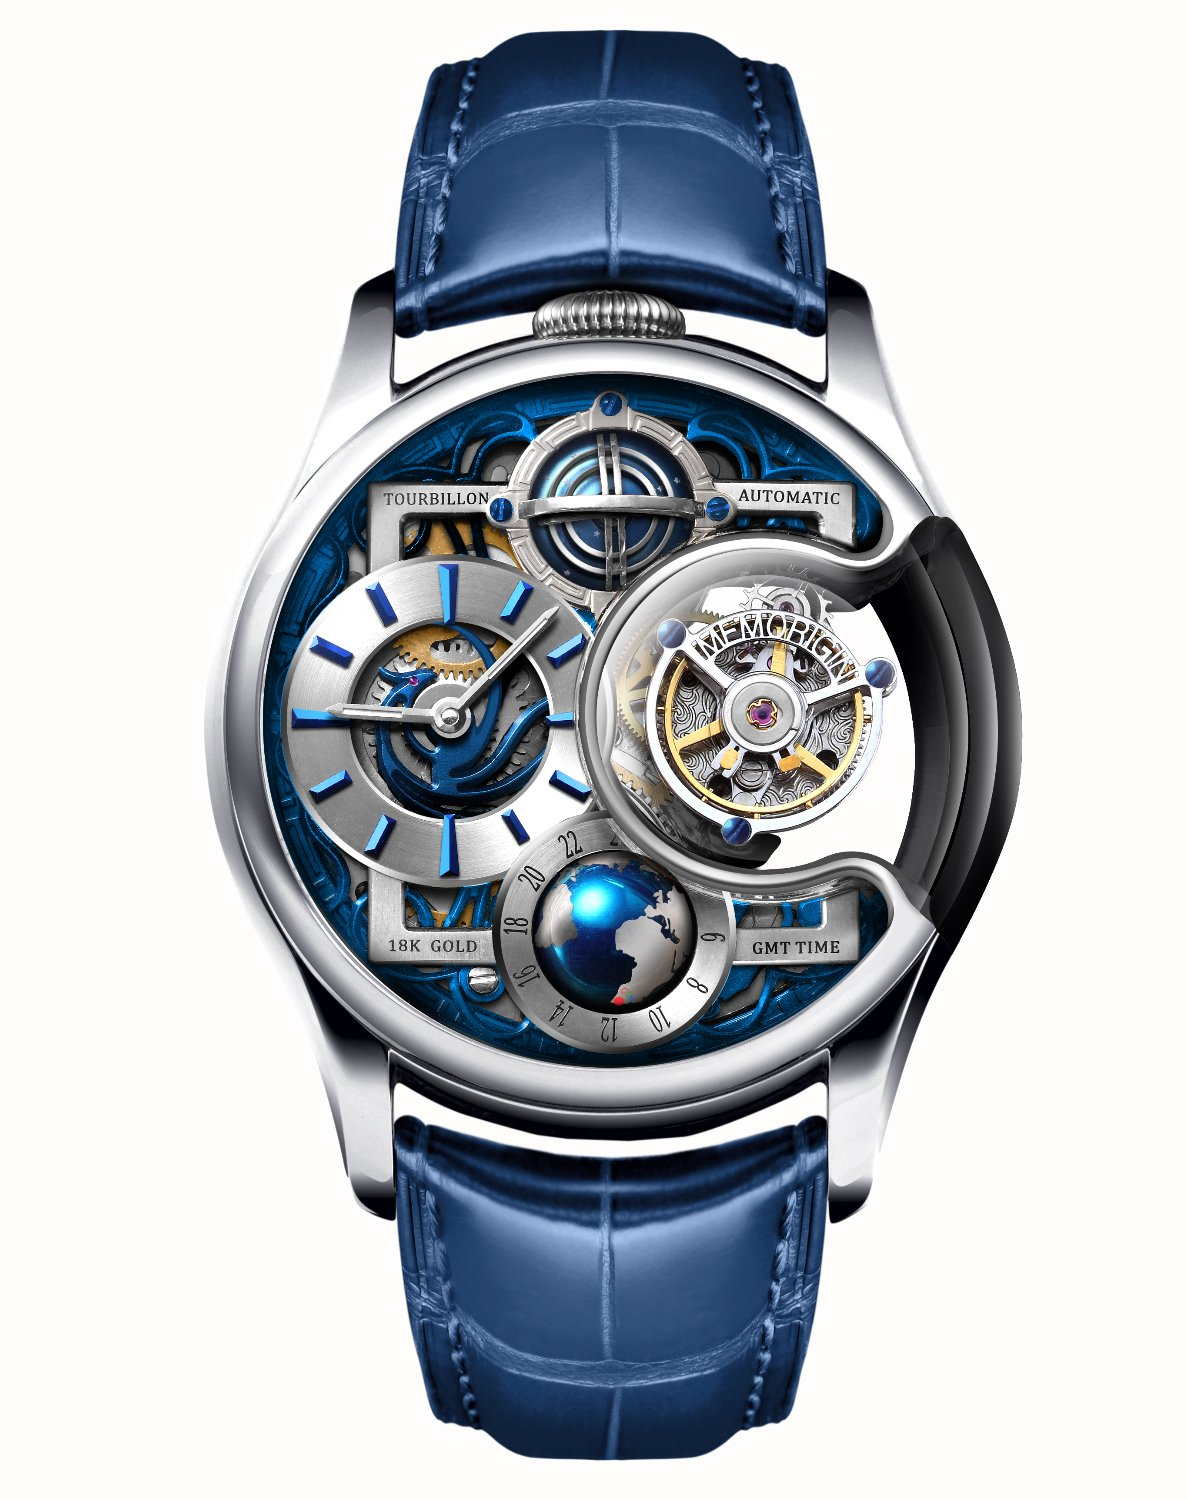 Memorigin Tourbillon Watches Imperial Stellar Silver Bitcoin Astronomia